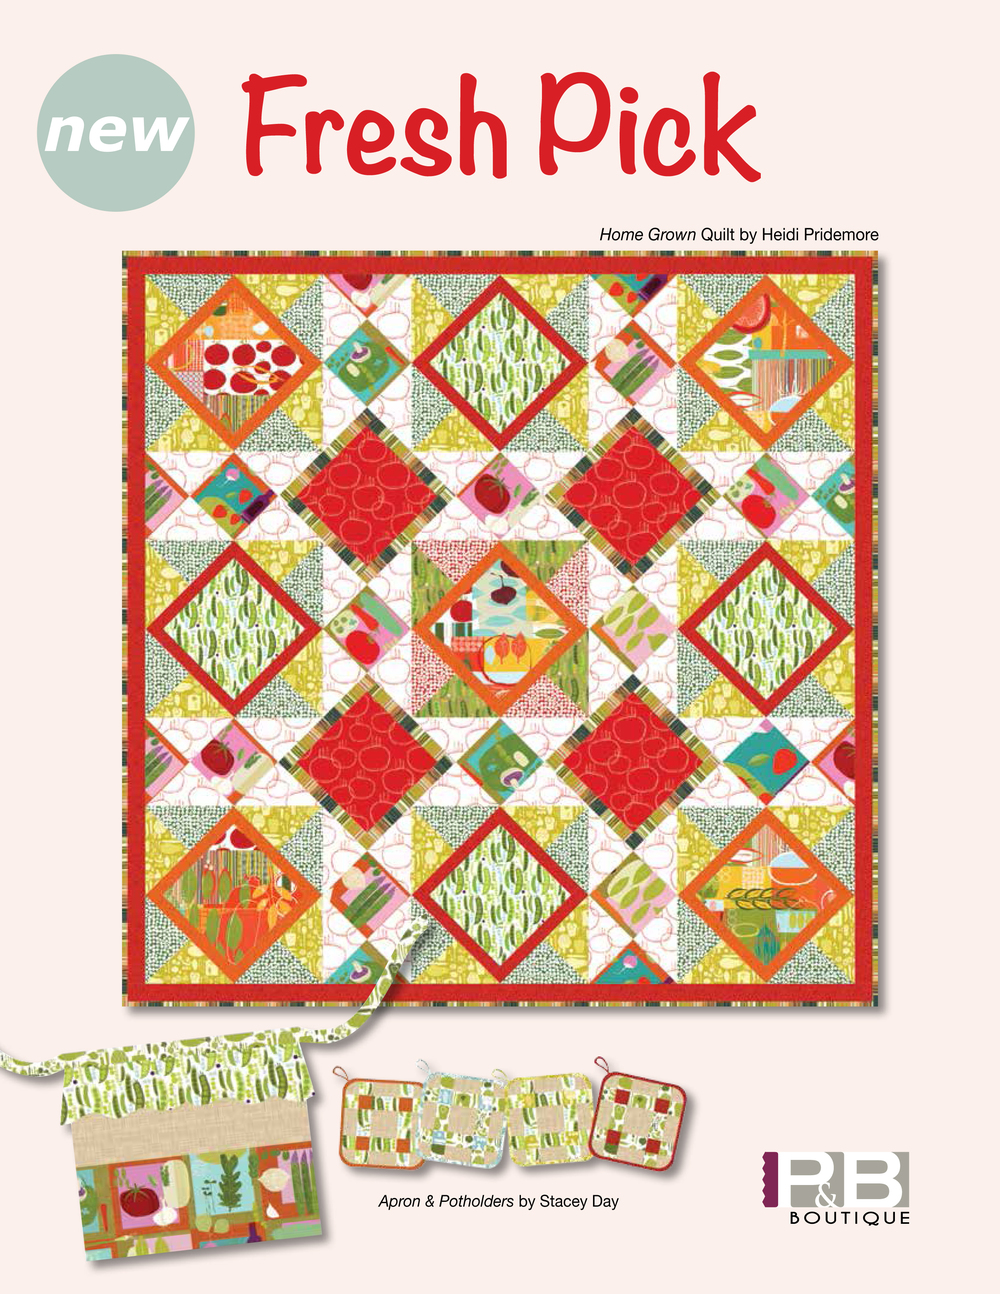 Home Grown Quilt by: Heidi Pridemore Fresh Pick